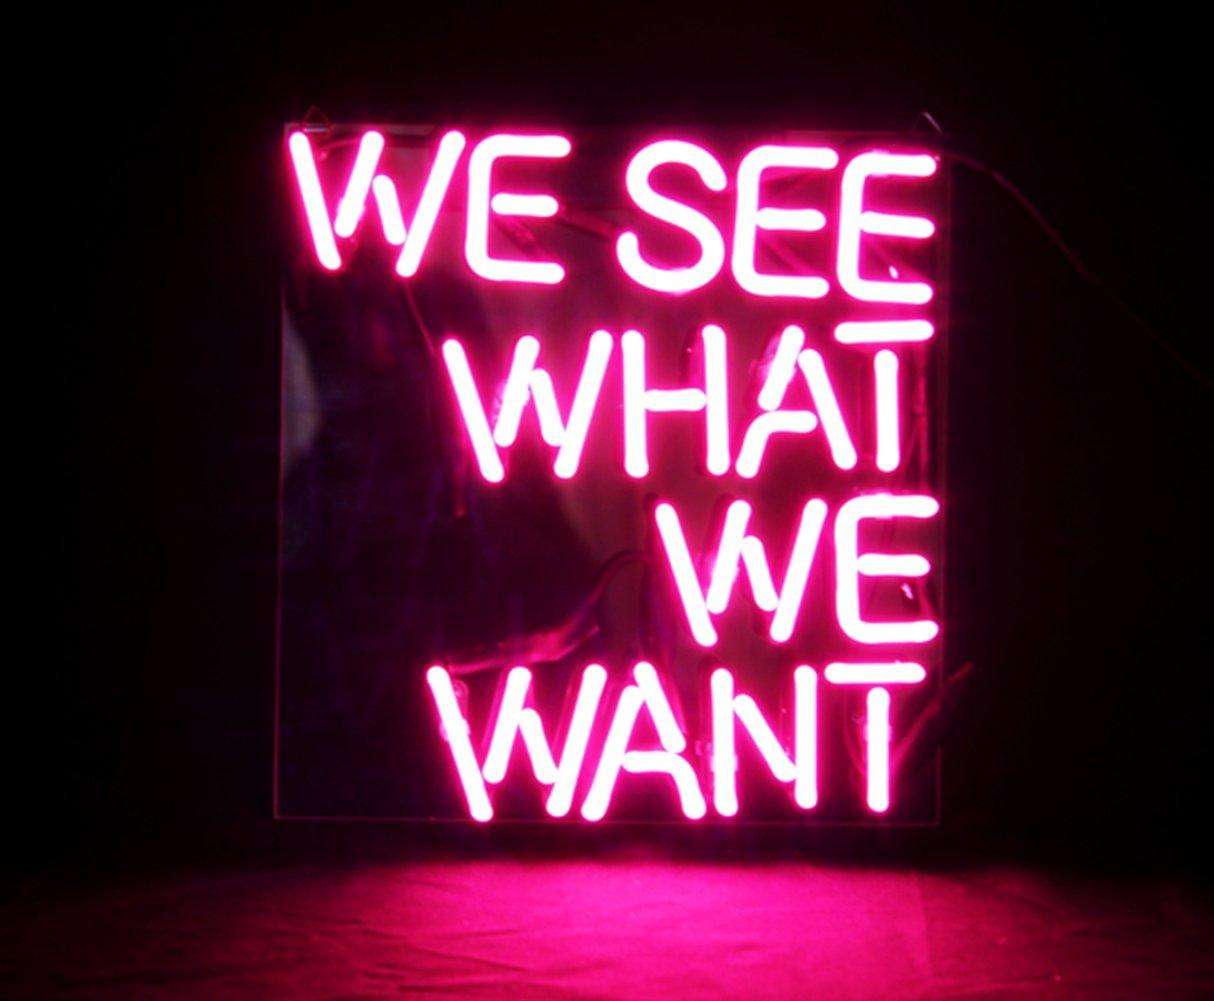 We See What We Want new Real Glass Neon Light Sign Home Beer Bar Pub  Recreation Room Game Room Windows Garage Wall Sign